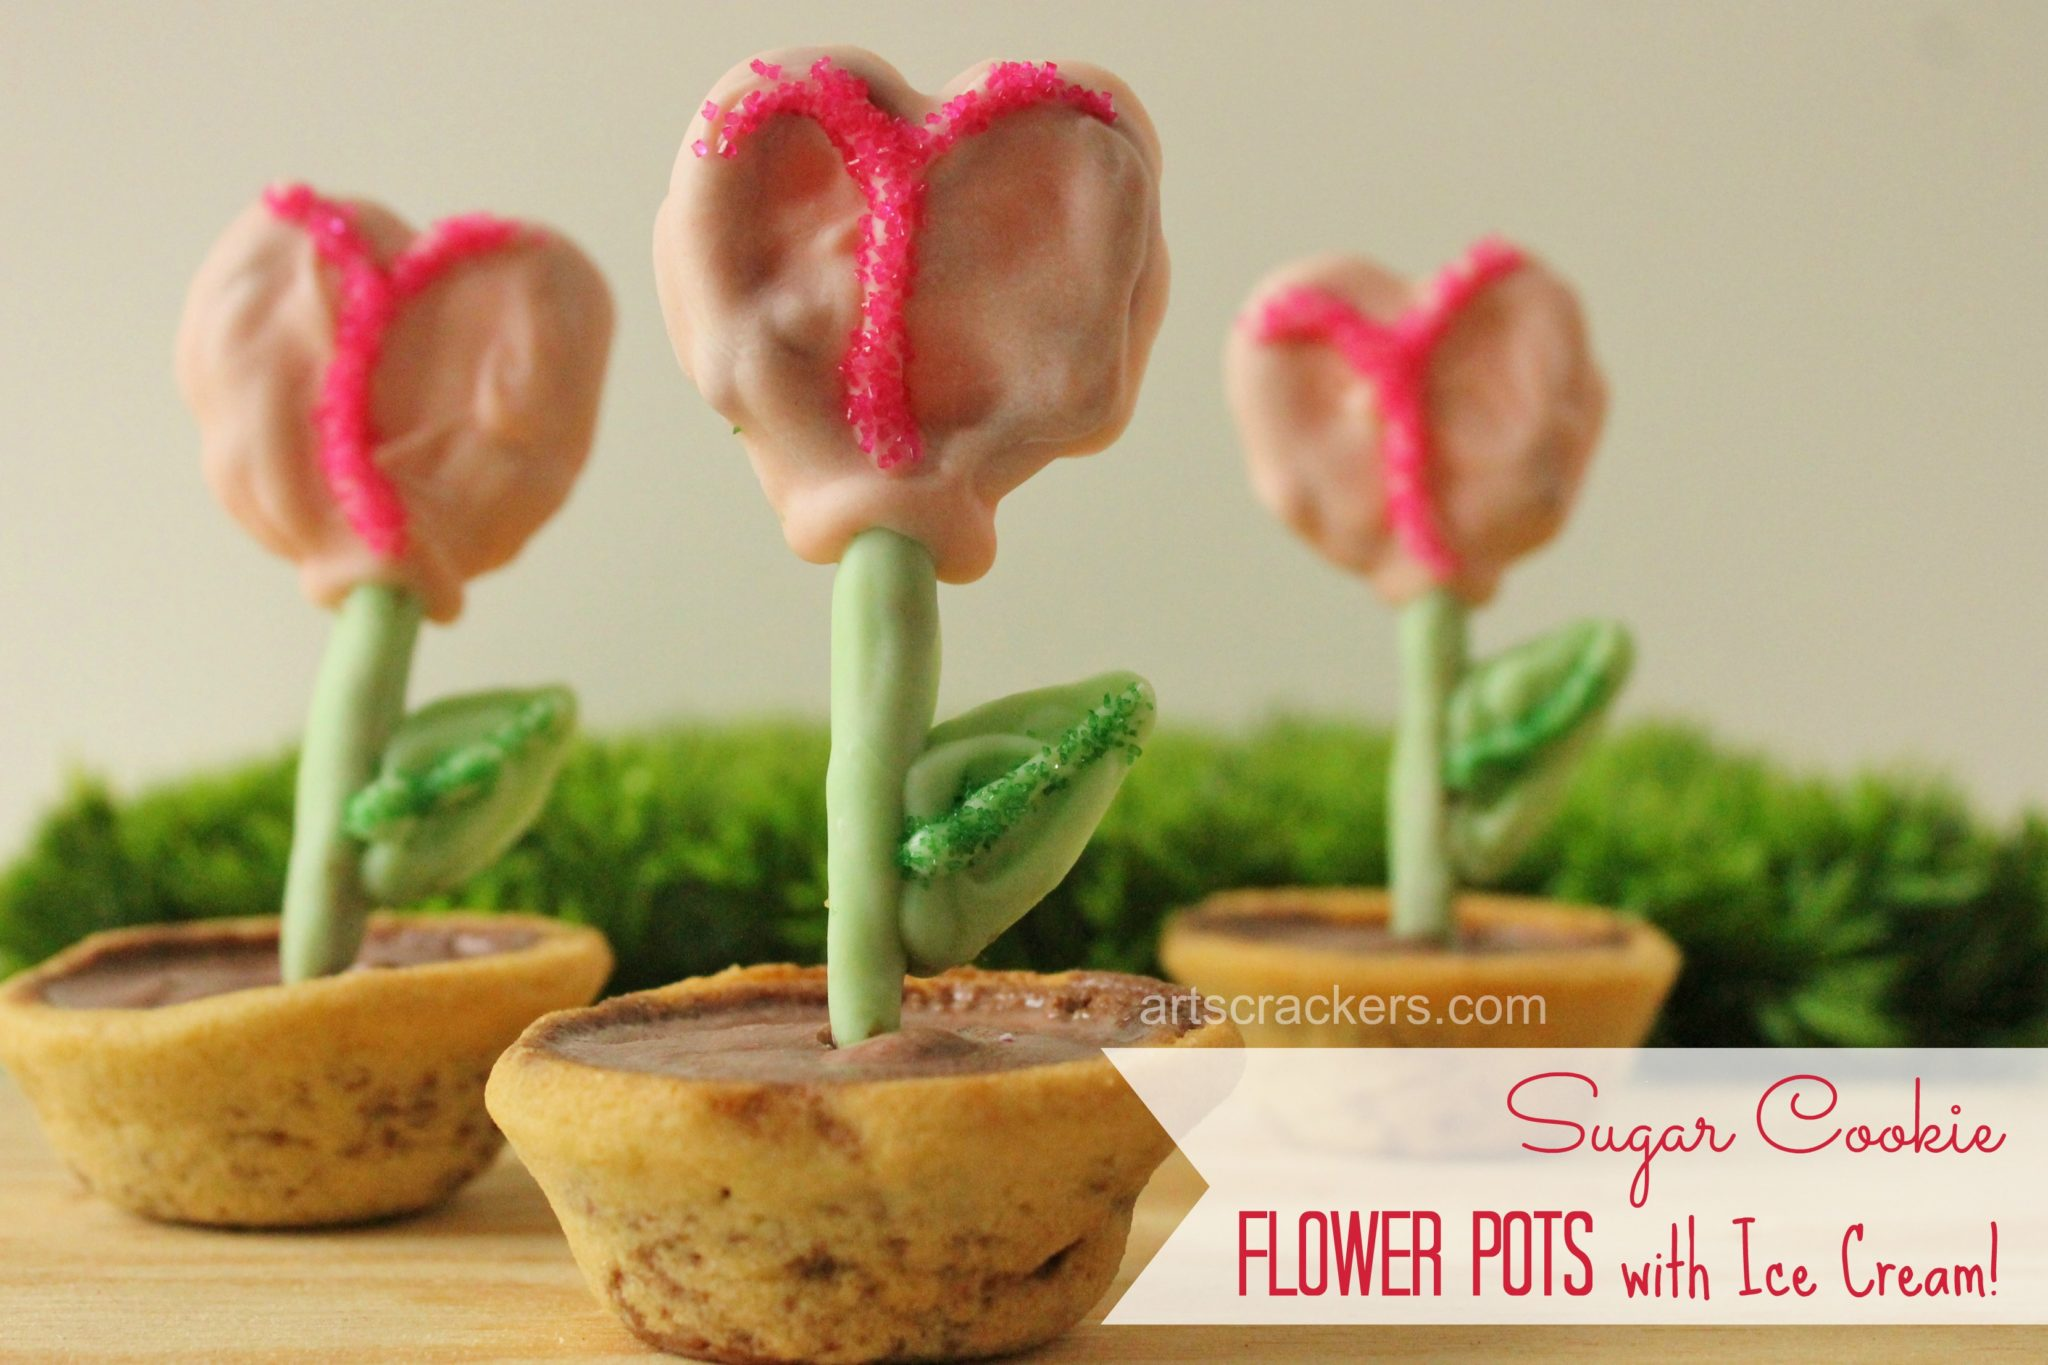 Sugar Cookie Flower Pots. Click the picture to view the instructions.